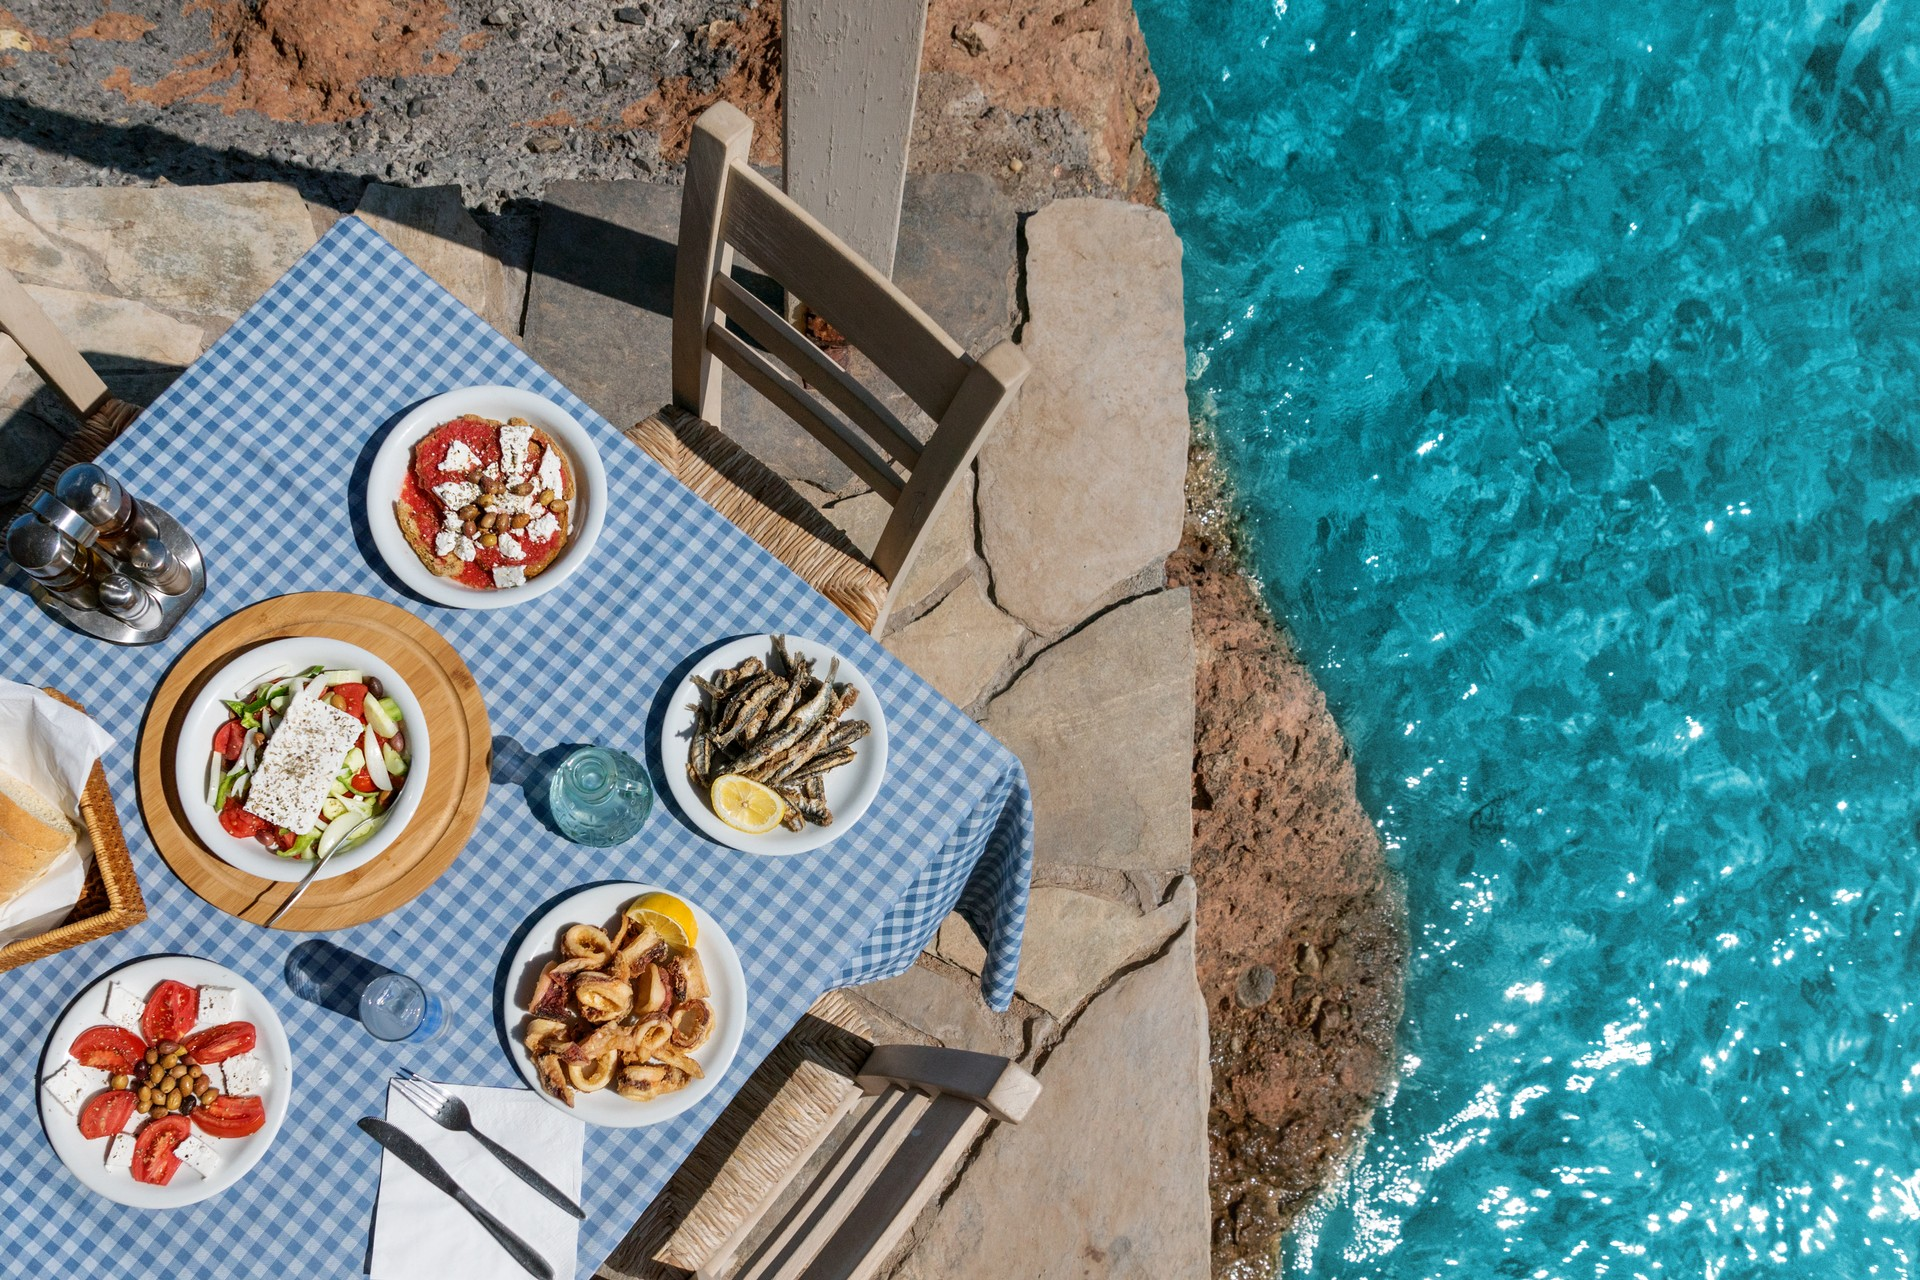 Table at a taverna with Greek mezze